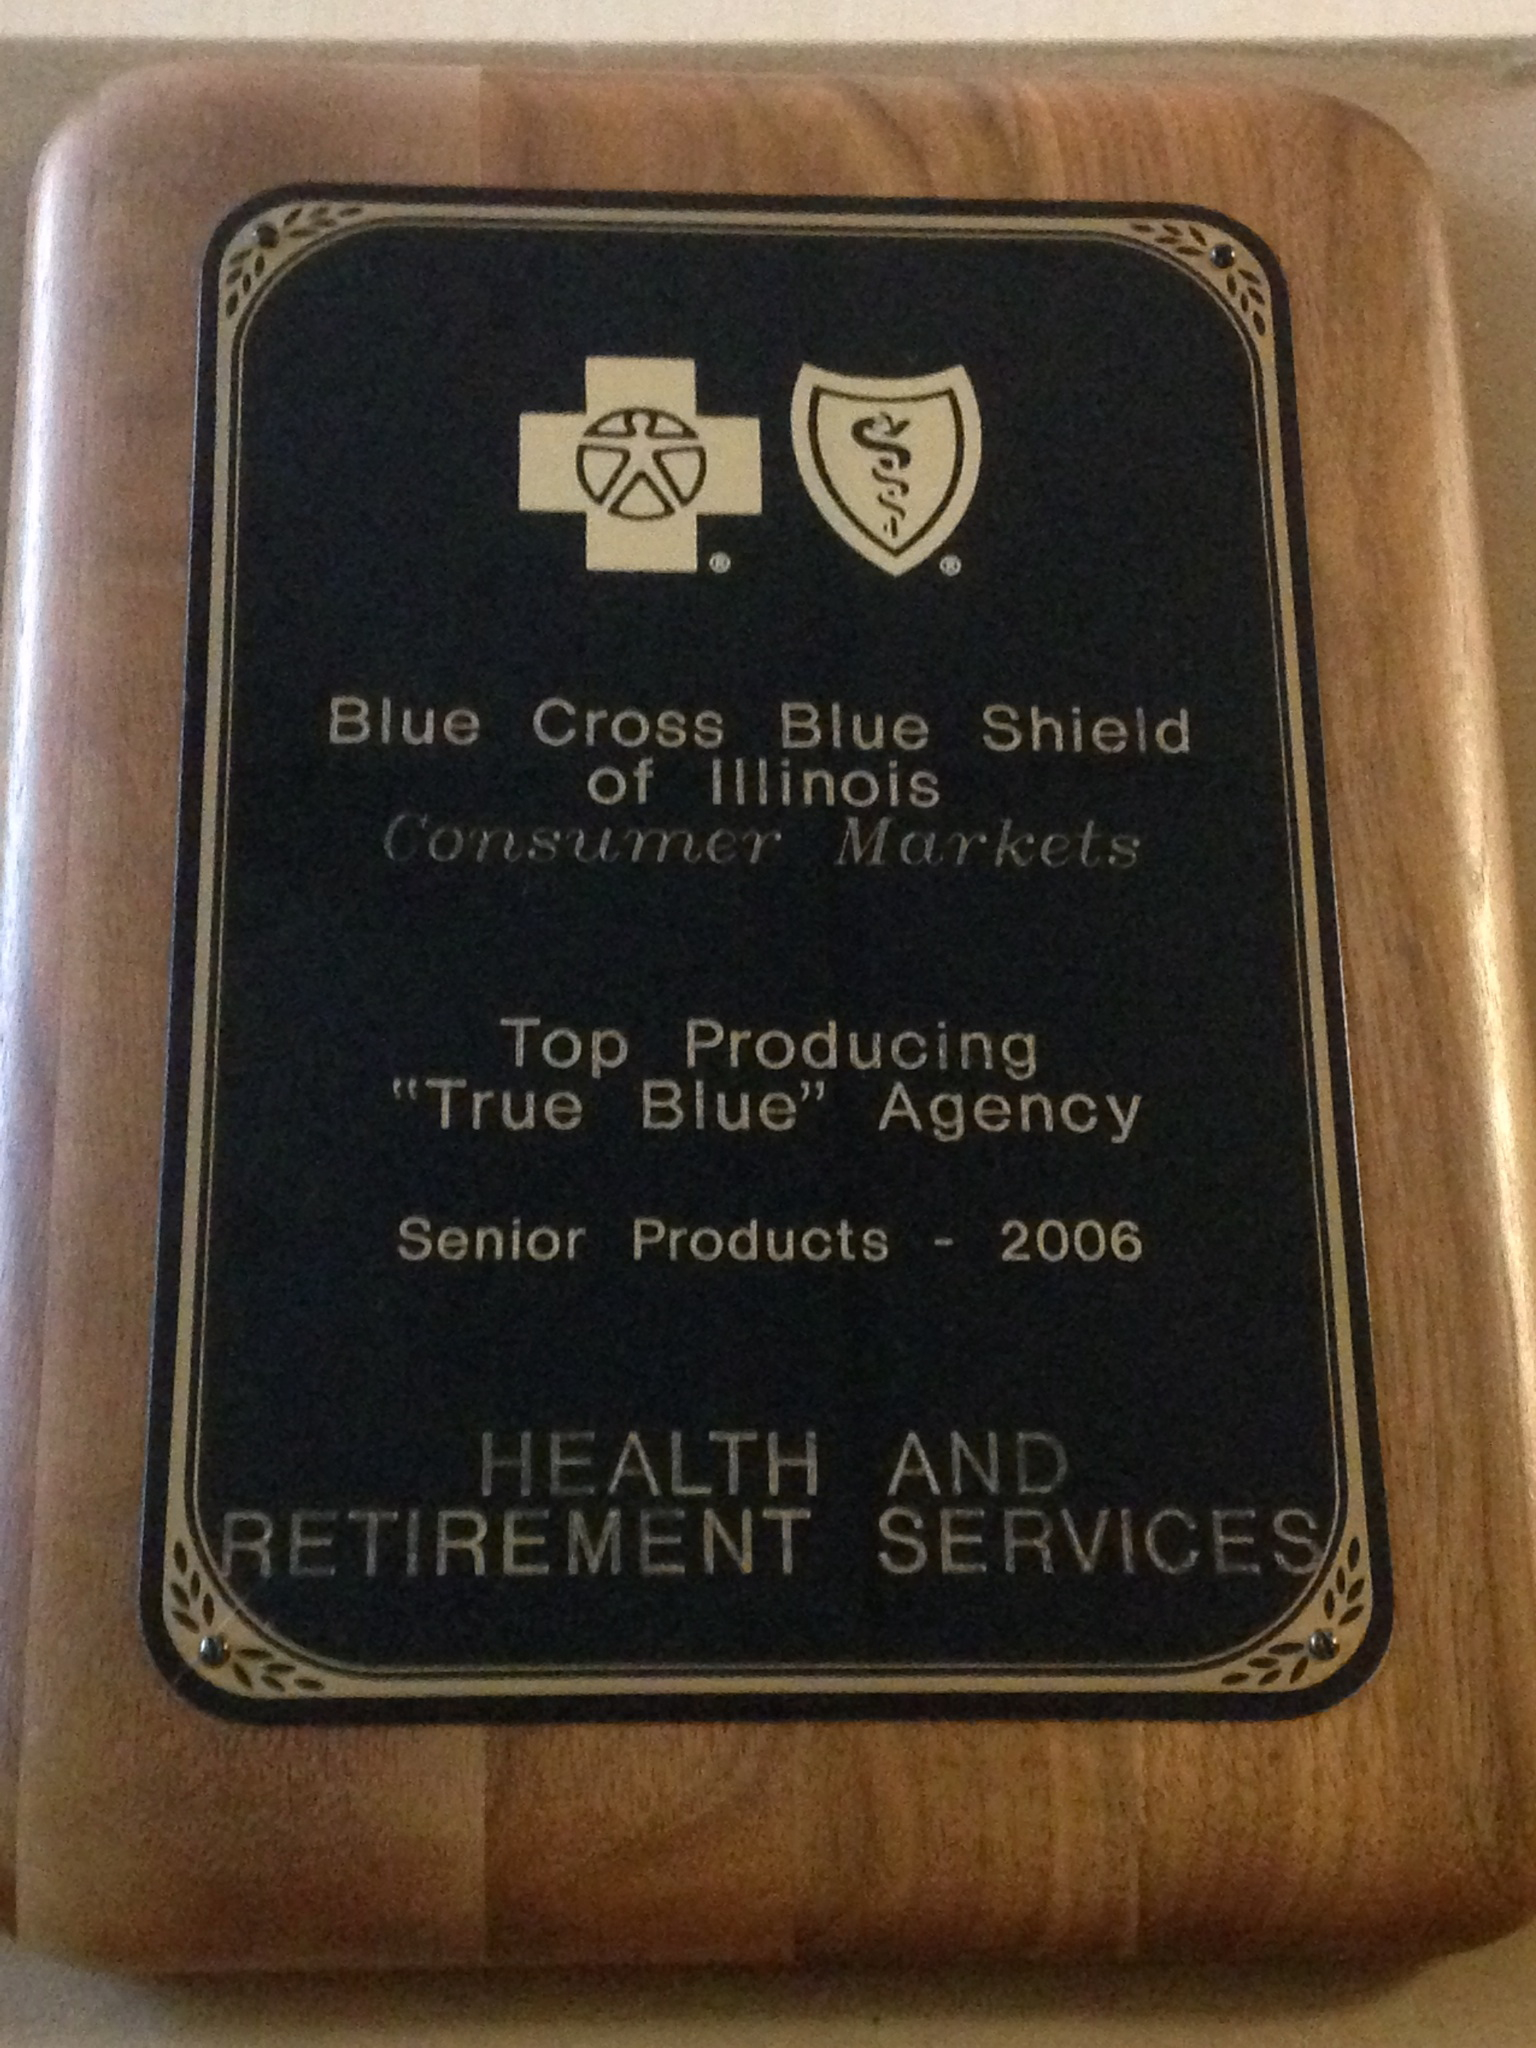 BlueCross BlueShield of Illinois 2006 top producer